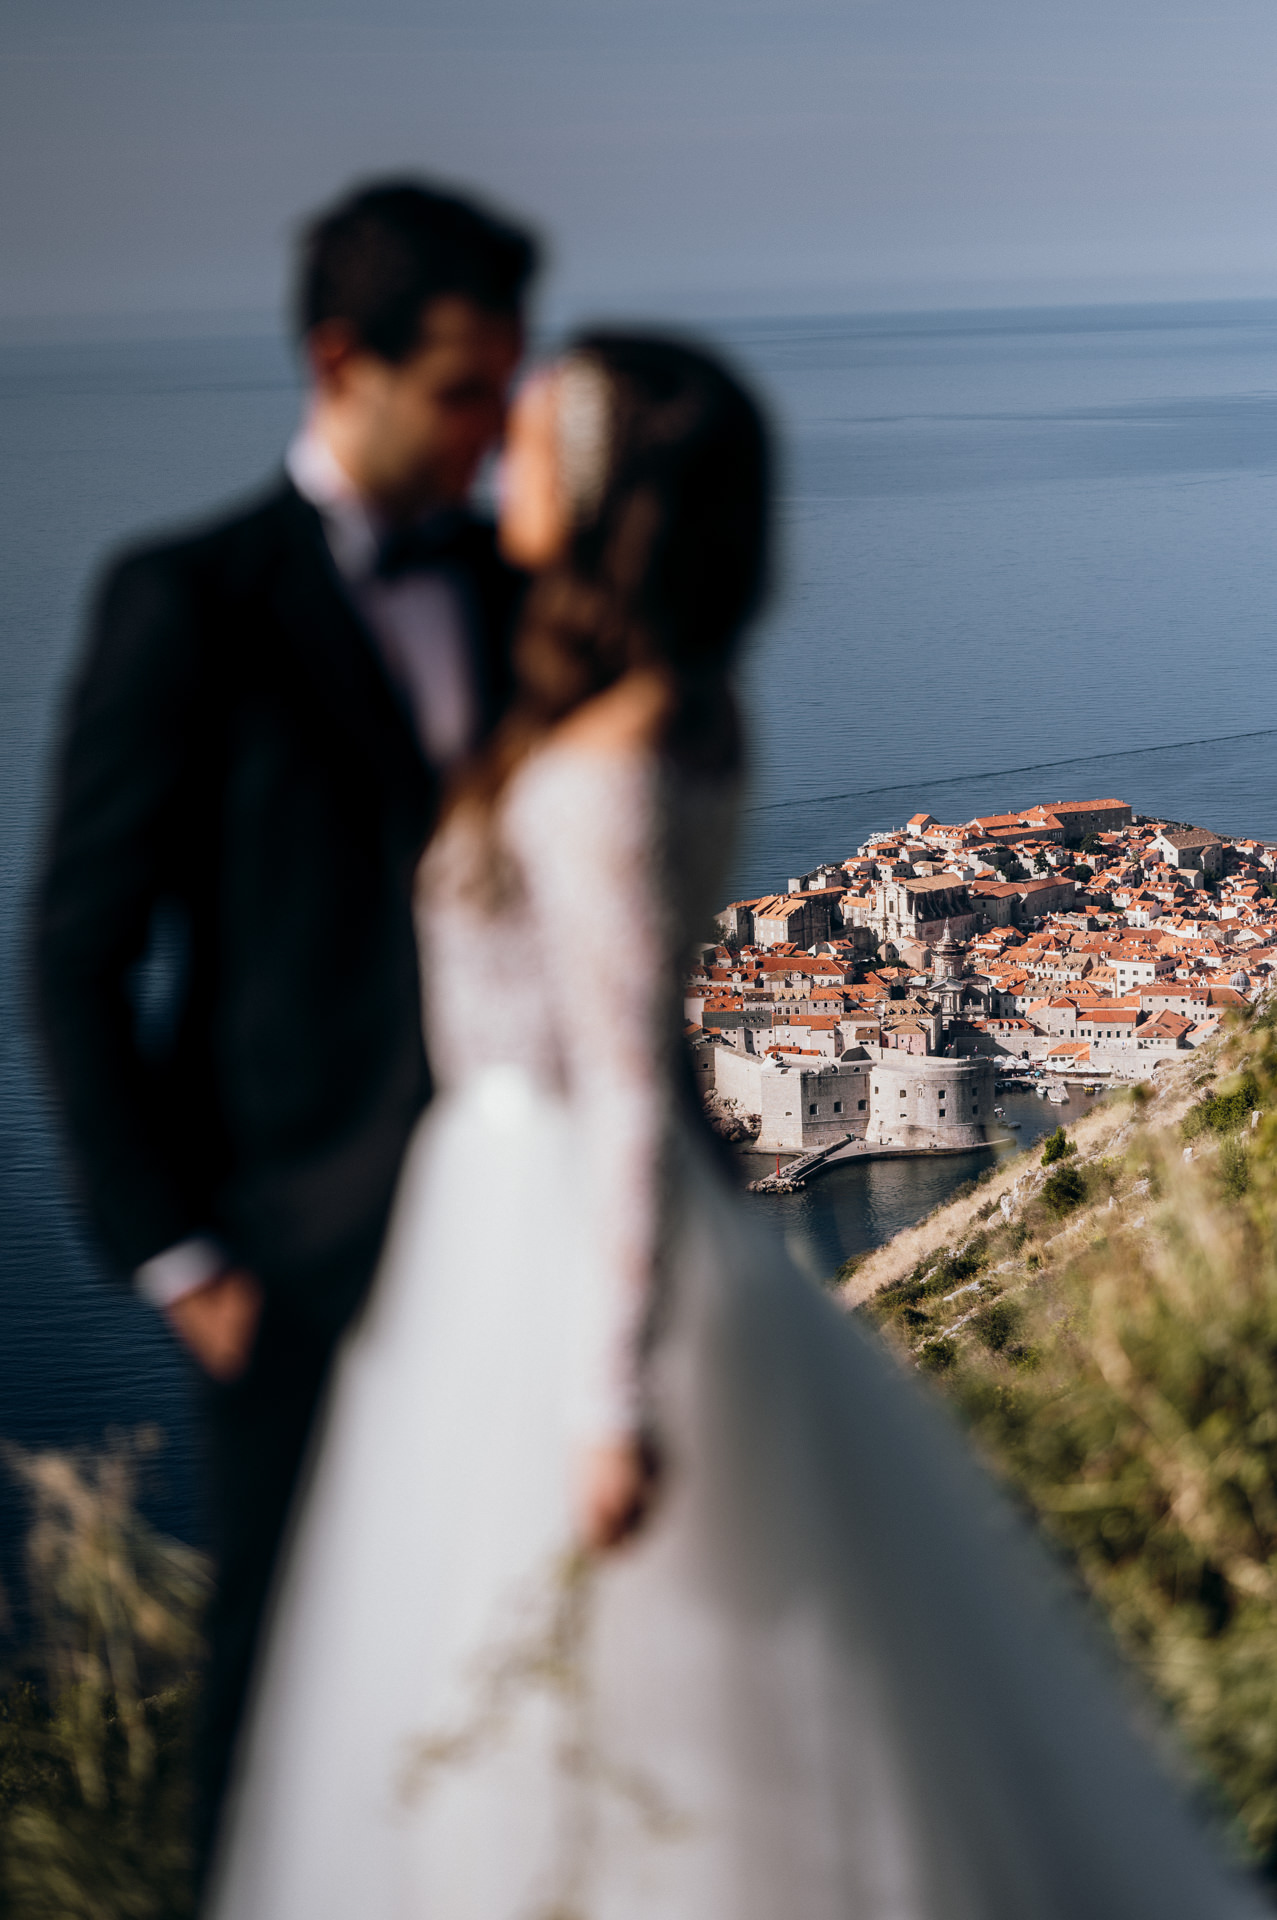 bride and groom together focus on the city of dubrovnik